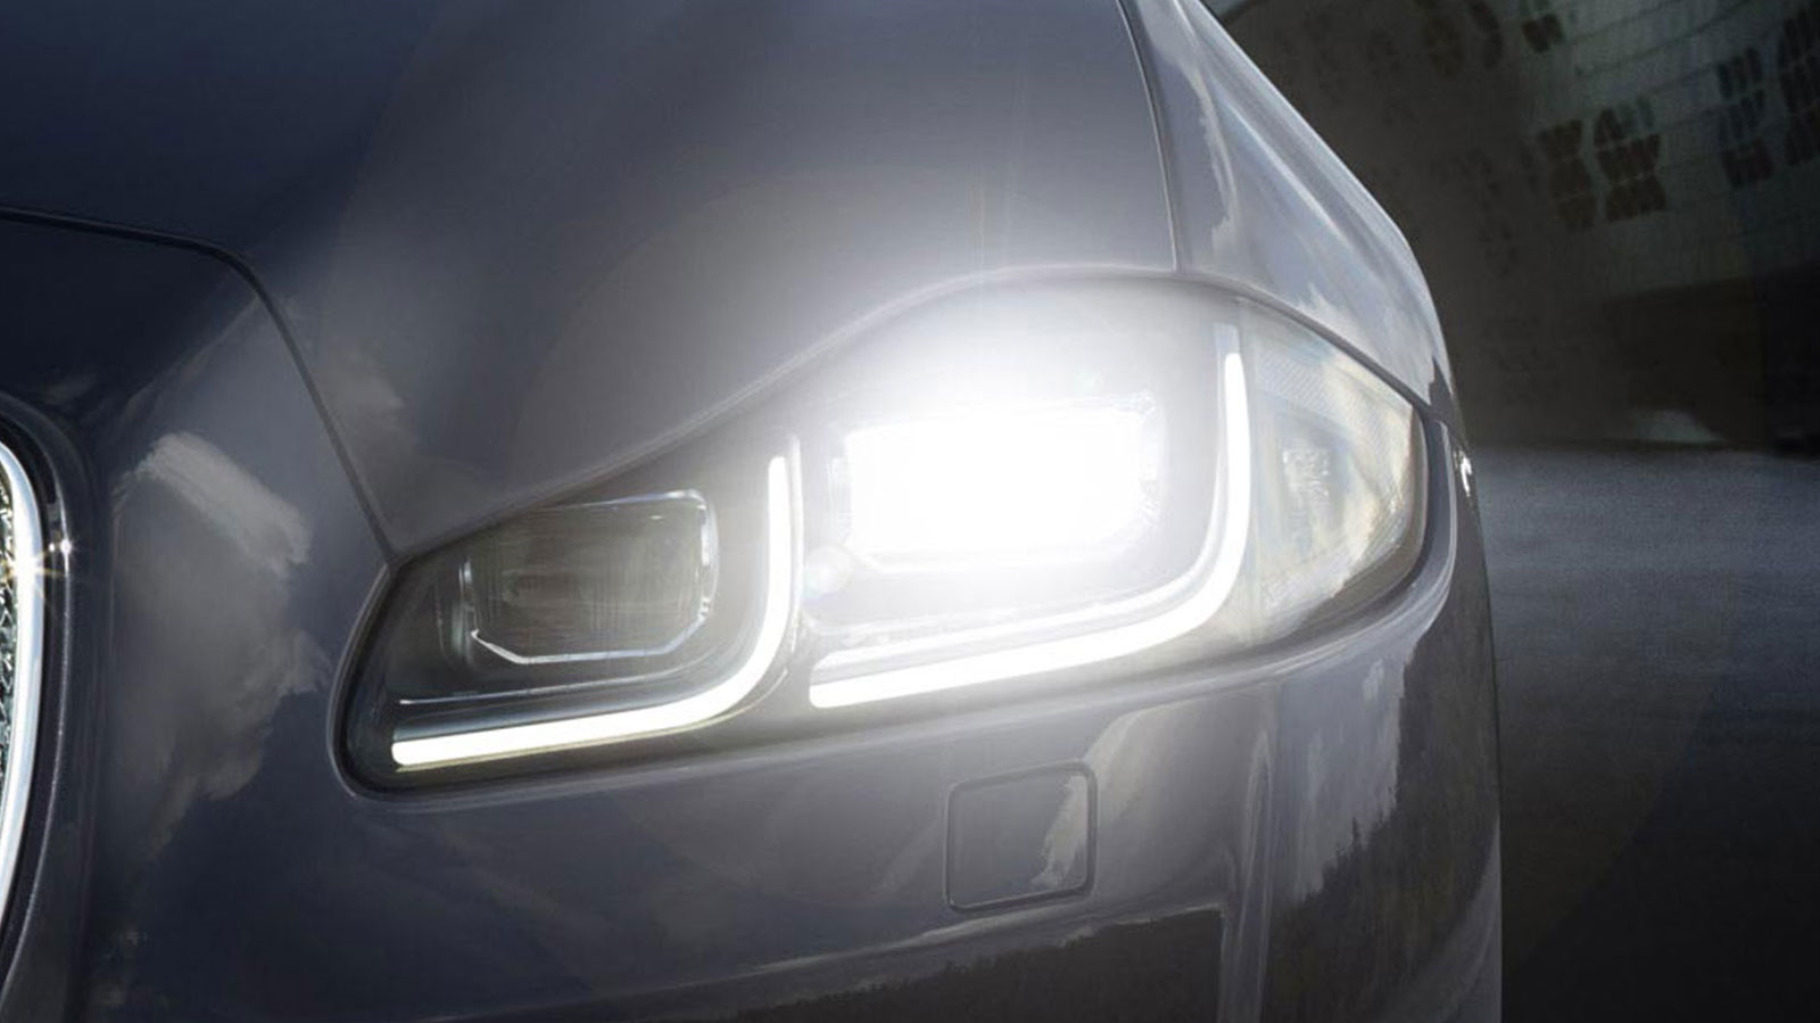 Automatic Headlamps and Intelligent High Beam Assist